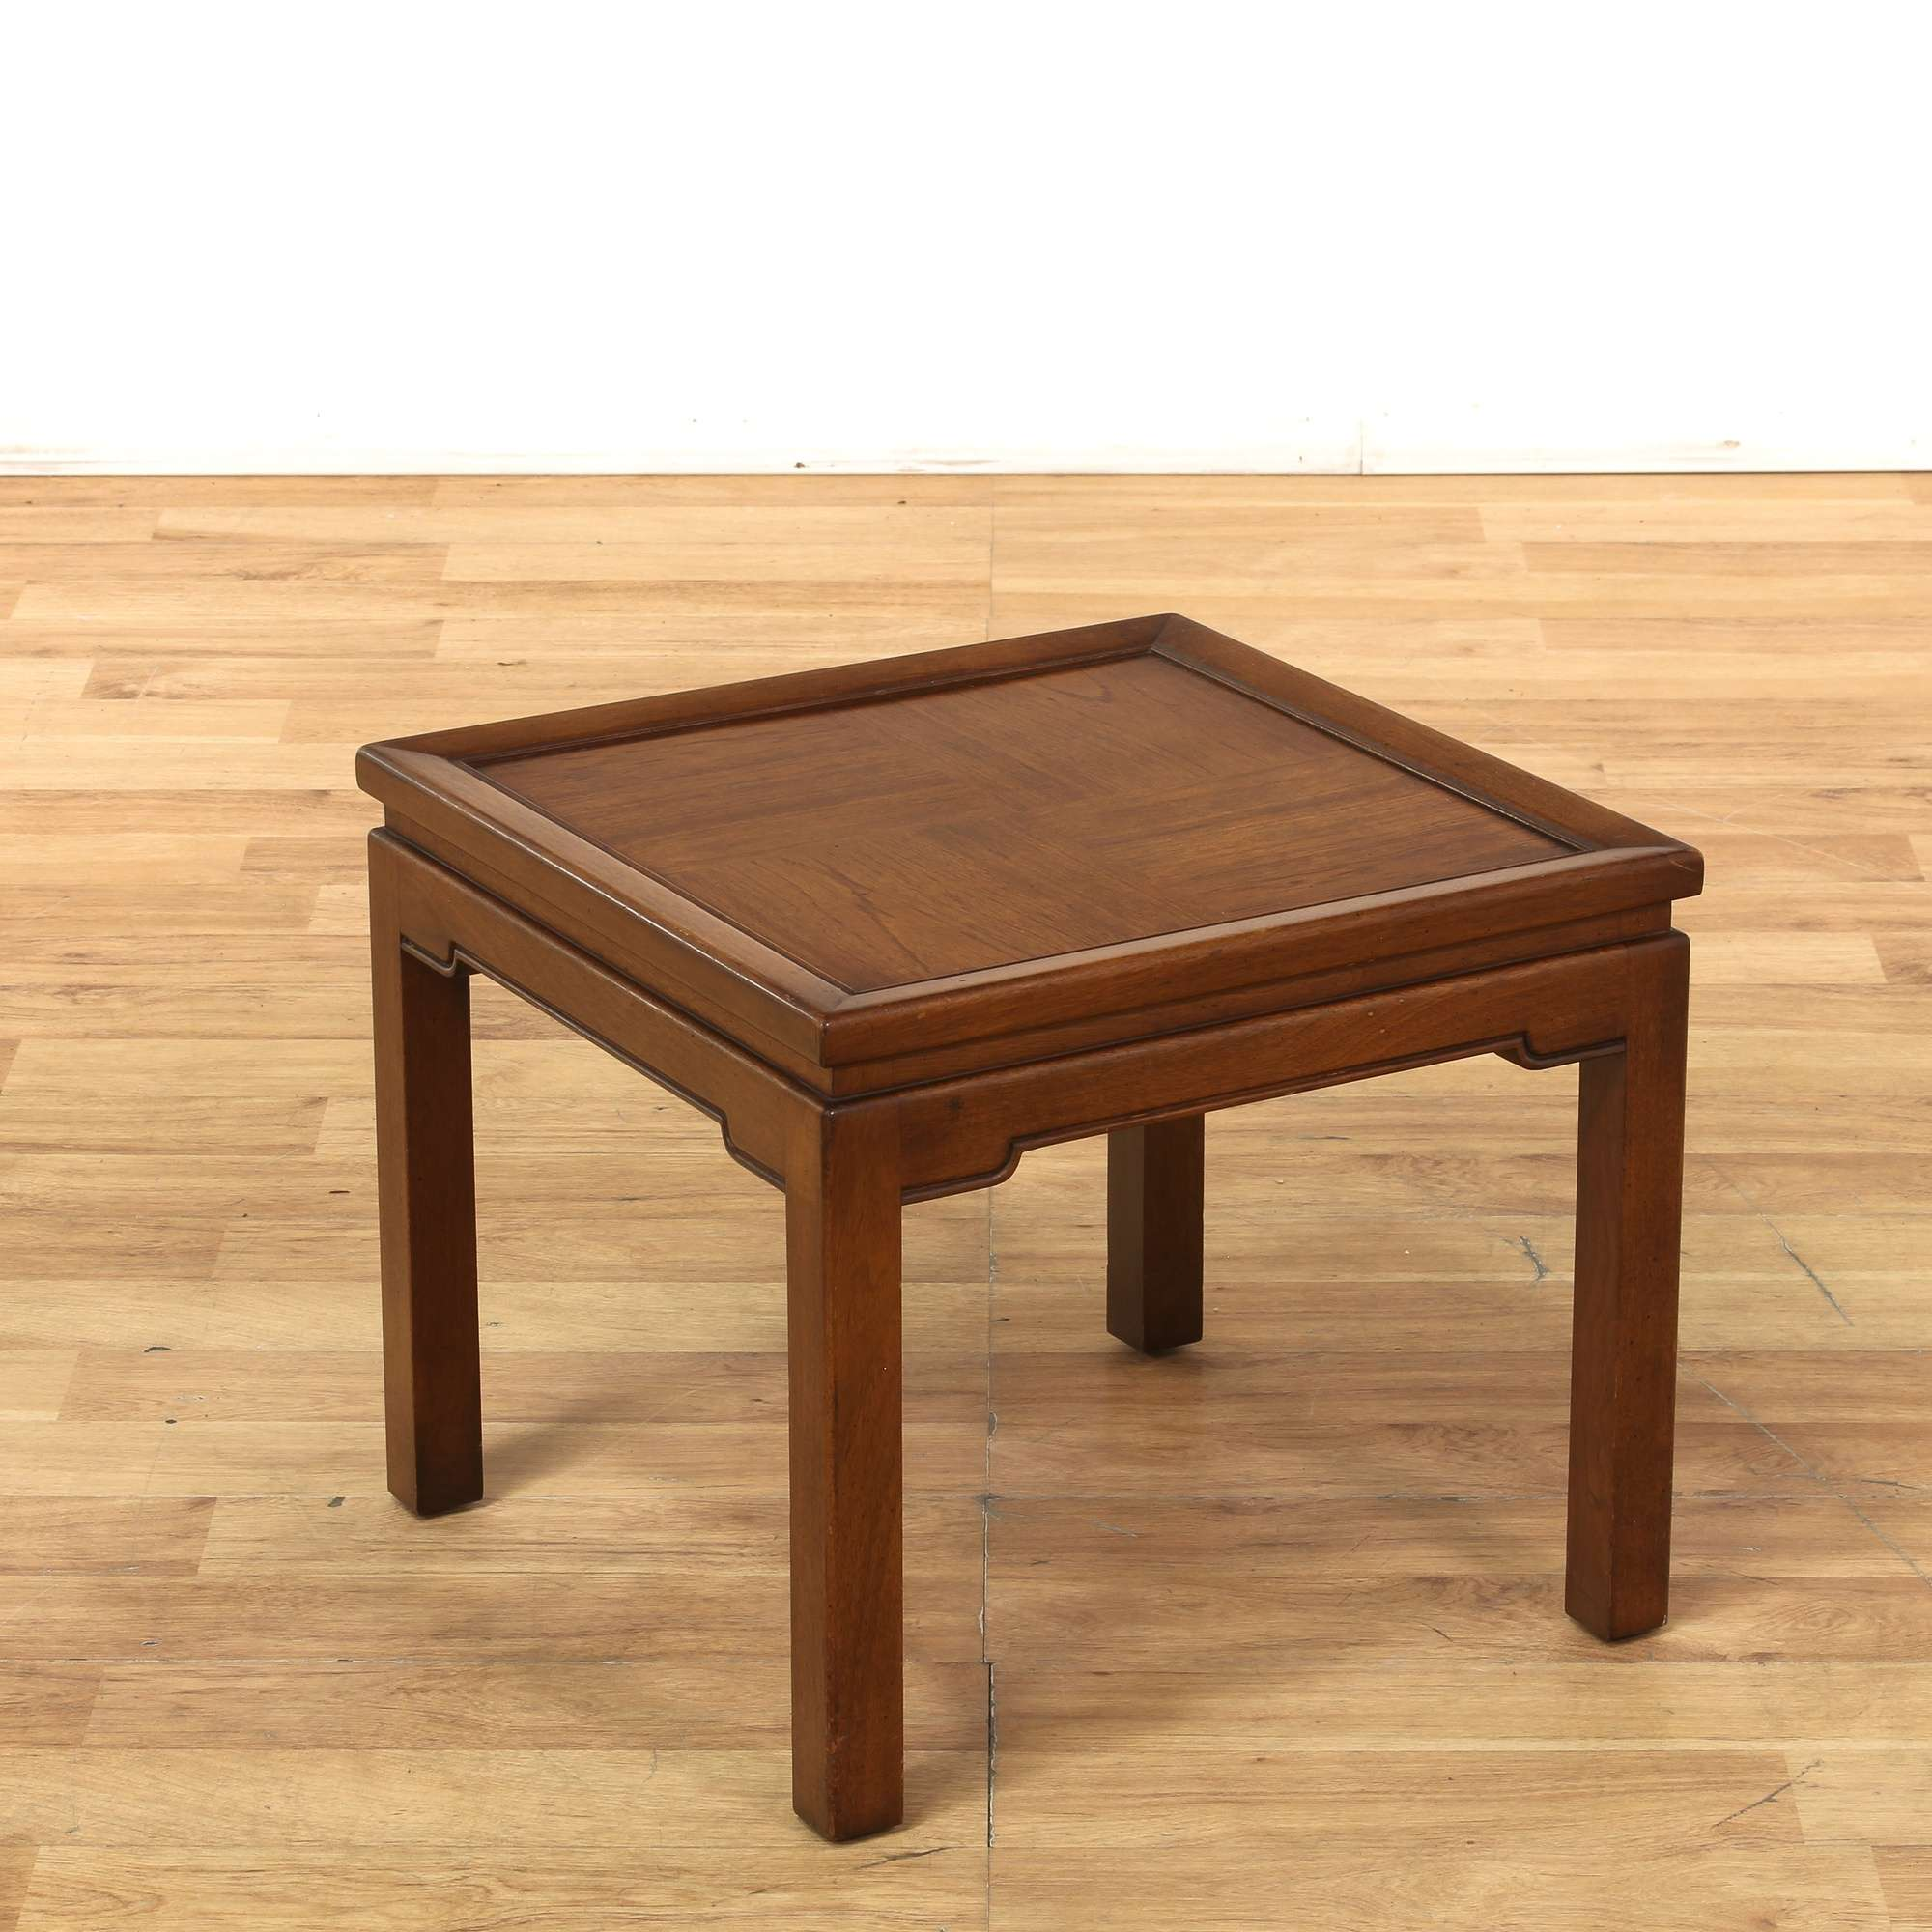 Simple Asian Square End Table 2 | Loveseat Vintage ...